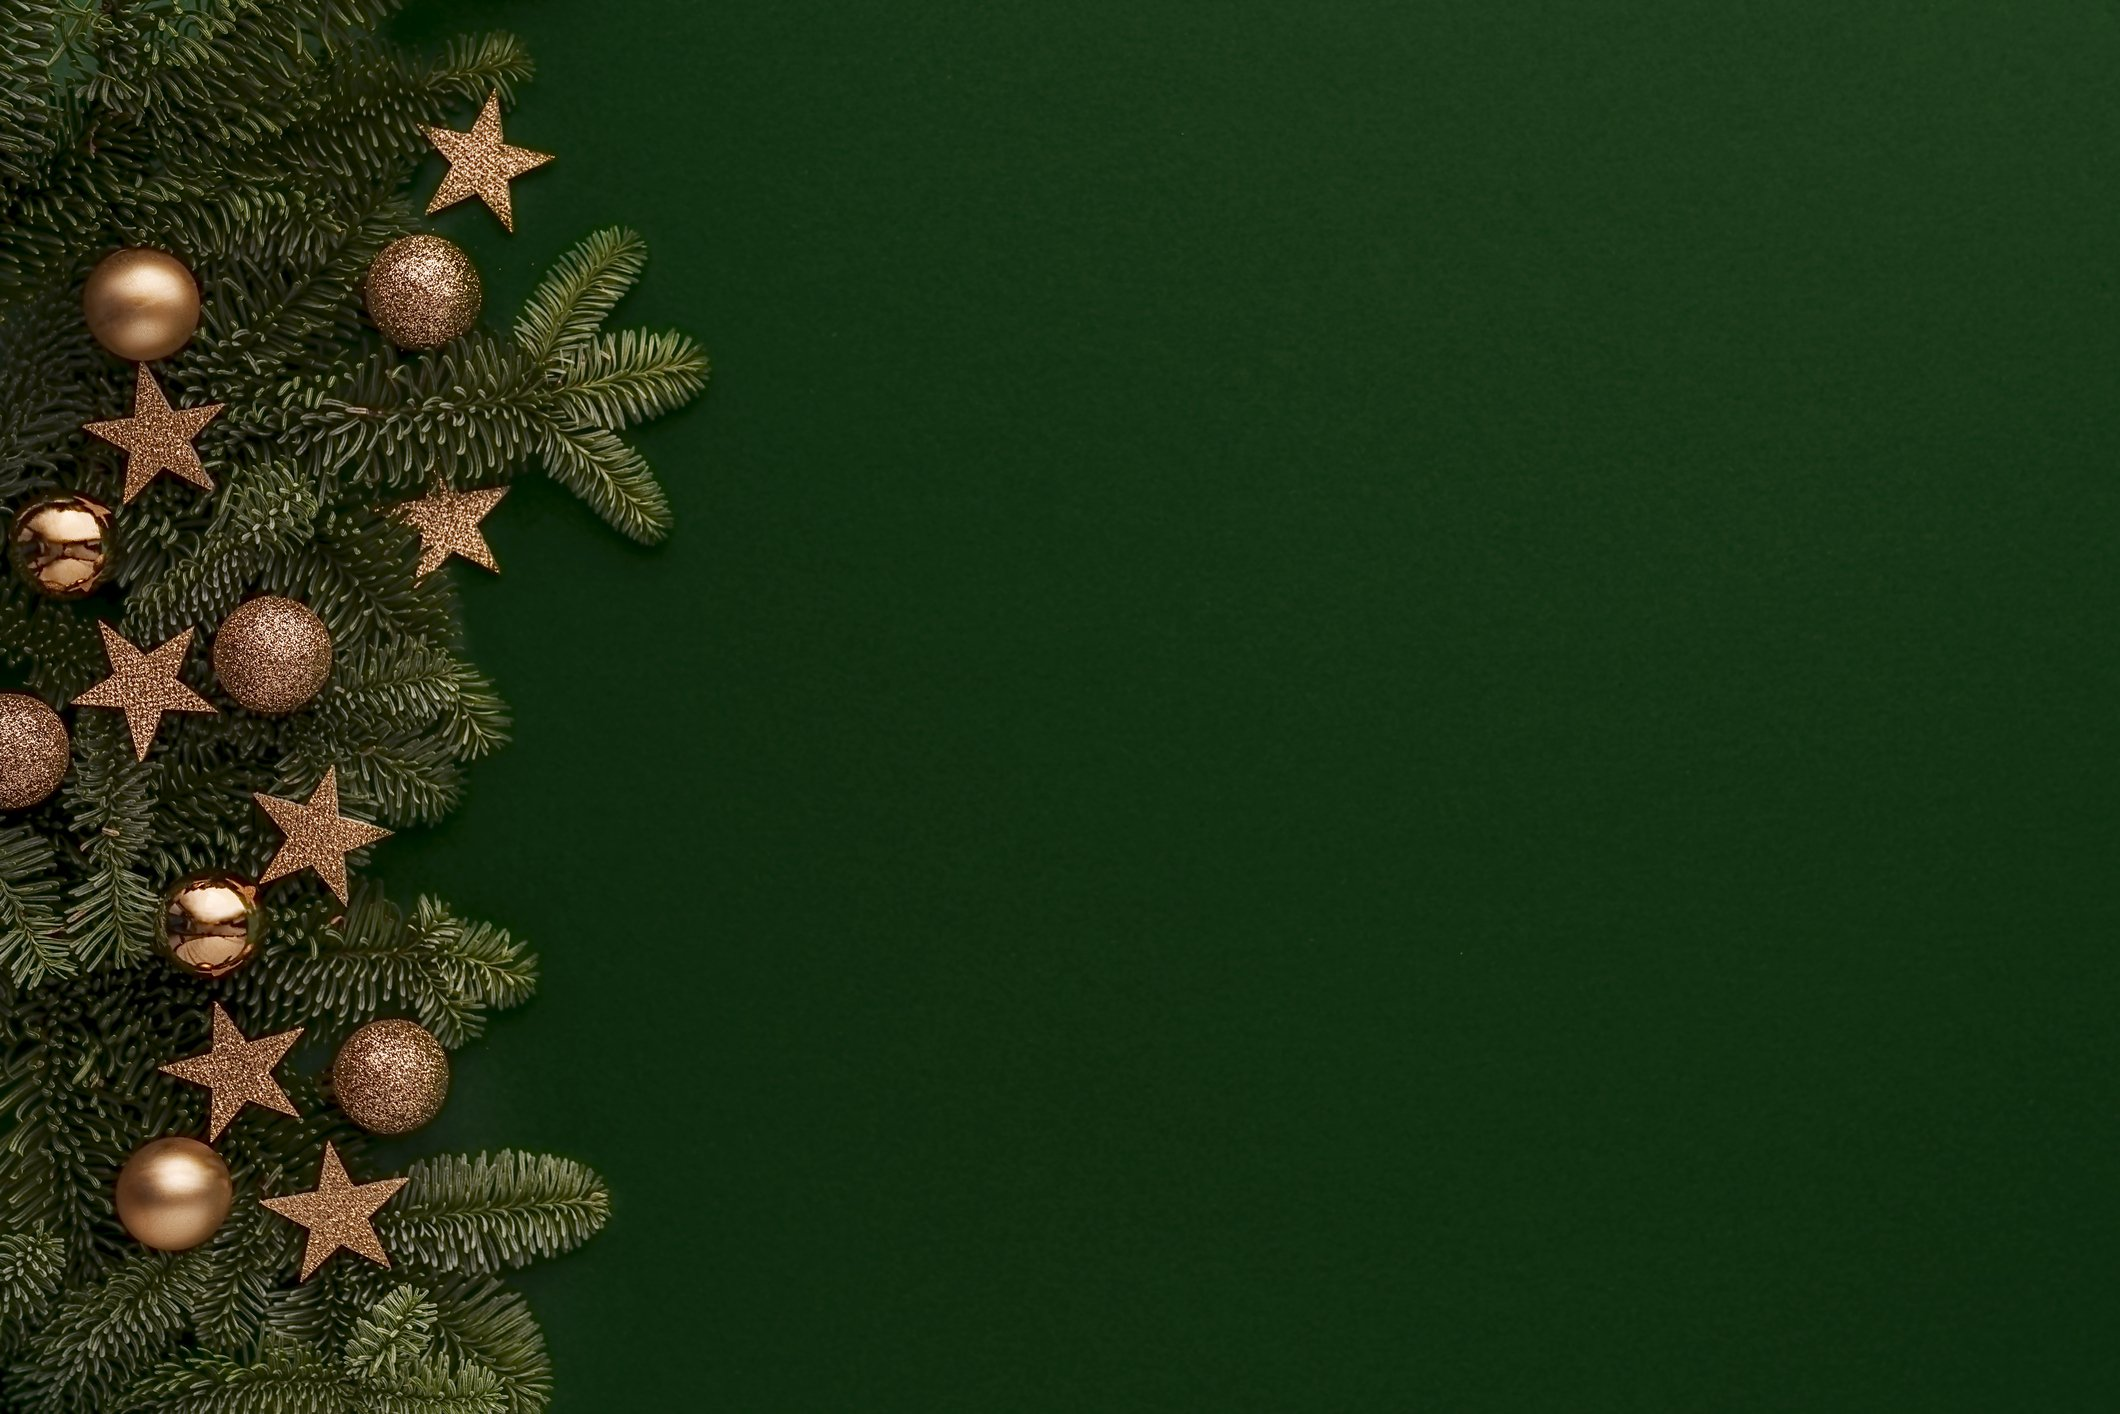 Photo of a fir tree on a Christmas background. | Photo: Getty Images